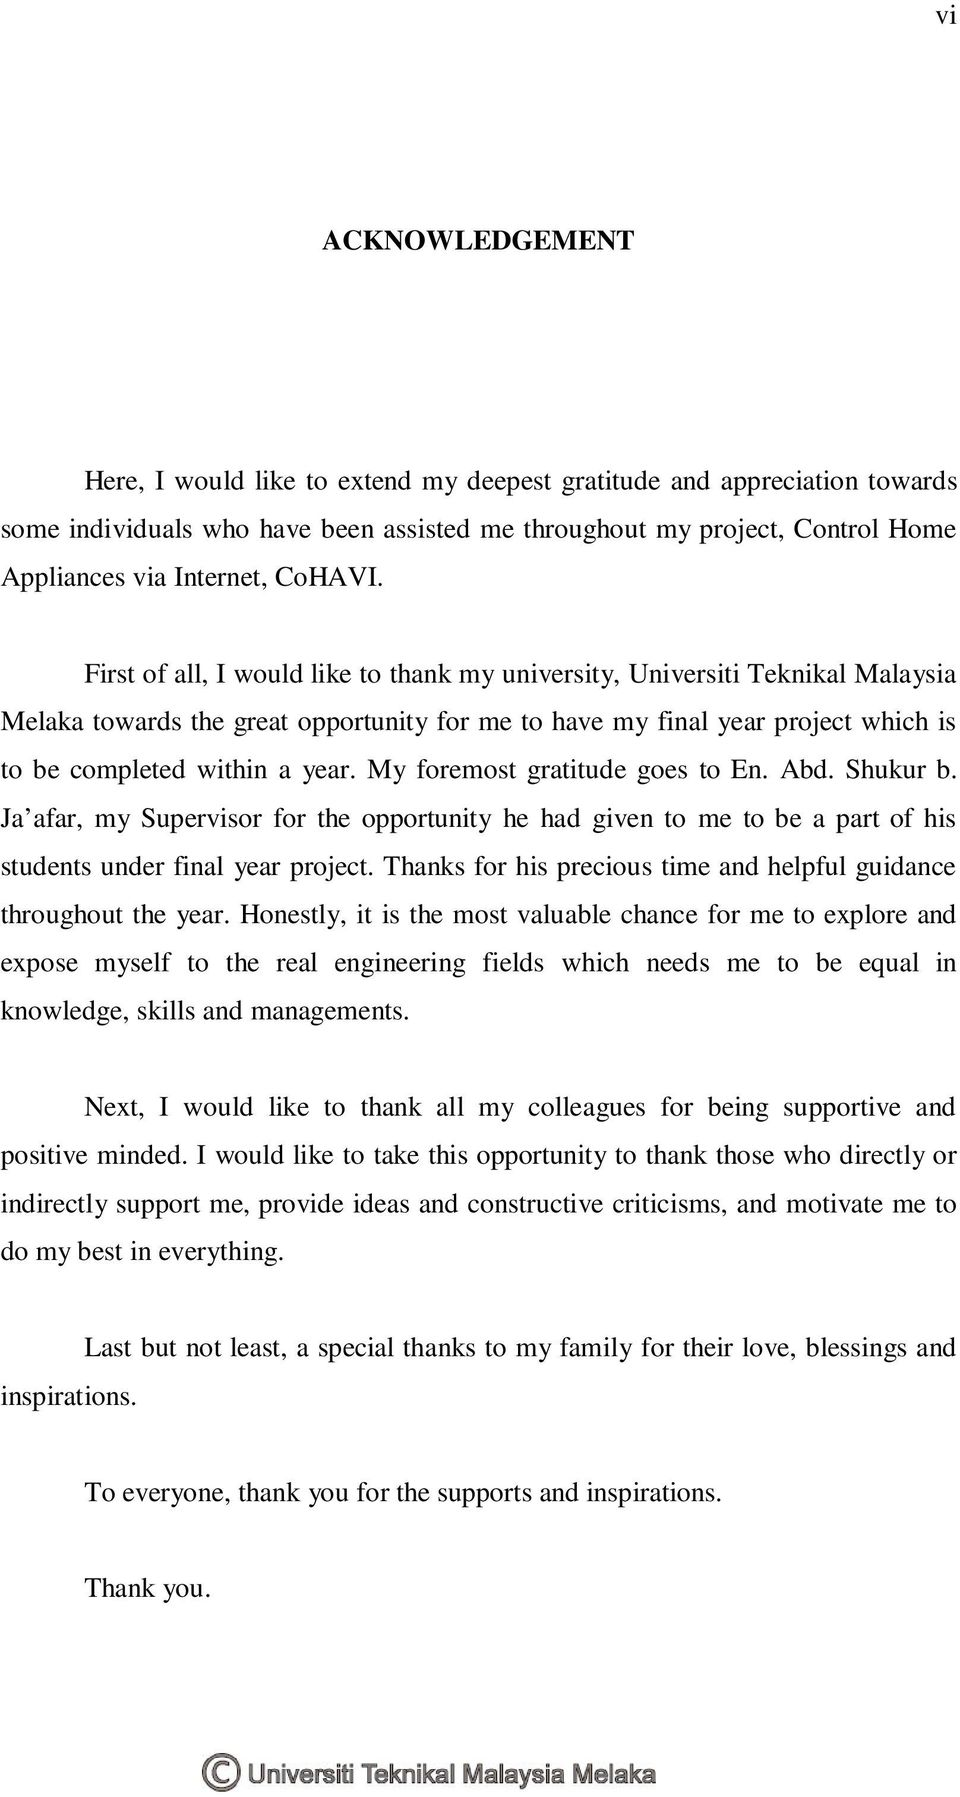 First of all, I would like to thank my university, Universiti Teknikal Malaysia Melaka towards the great opportunity for me to have my final year project which is to be completed within a year.